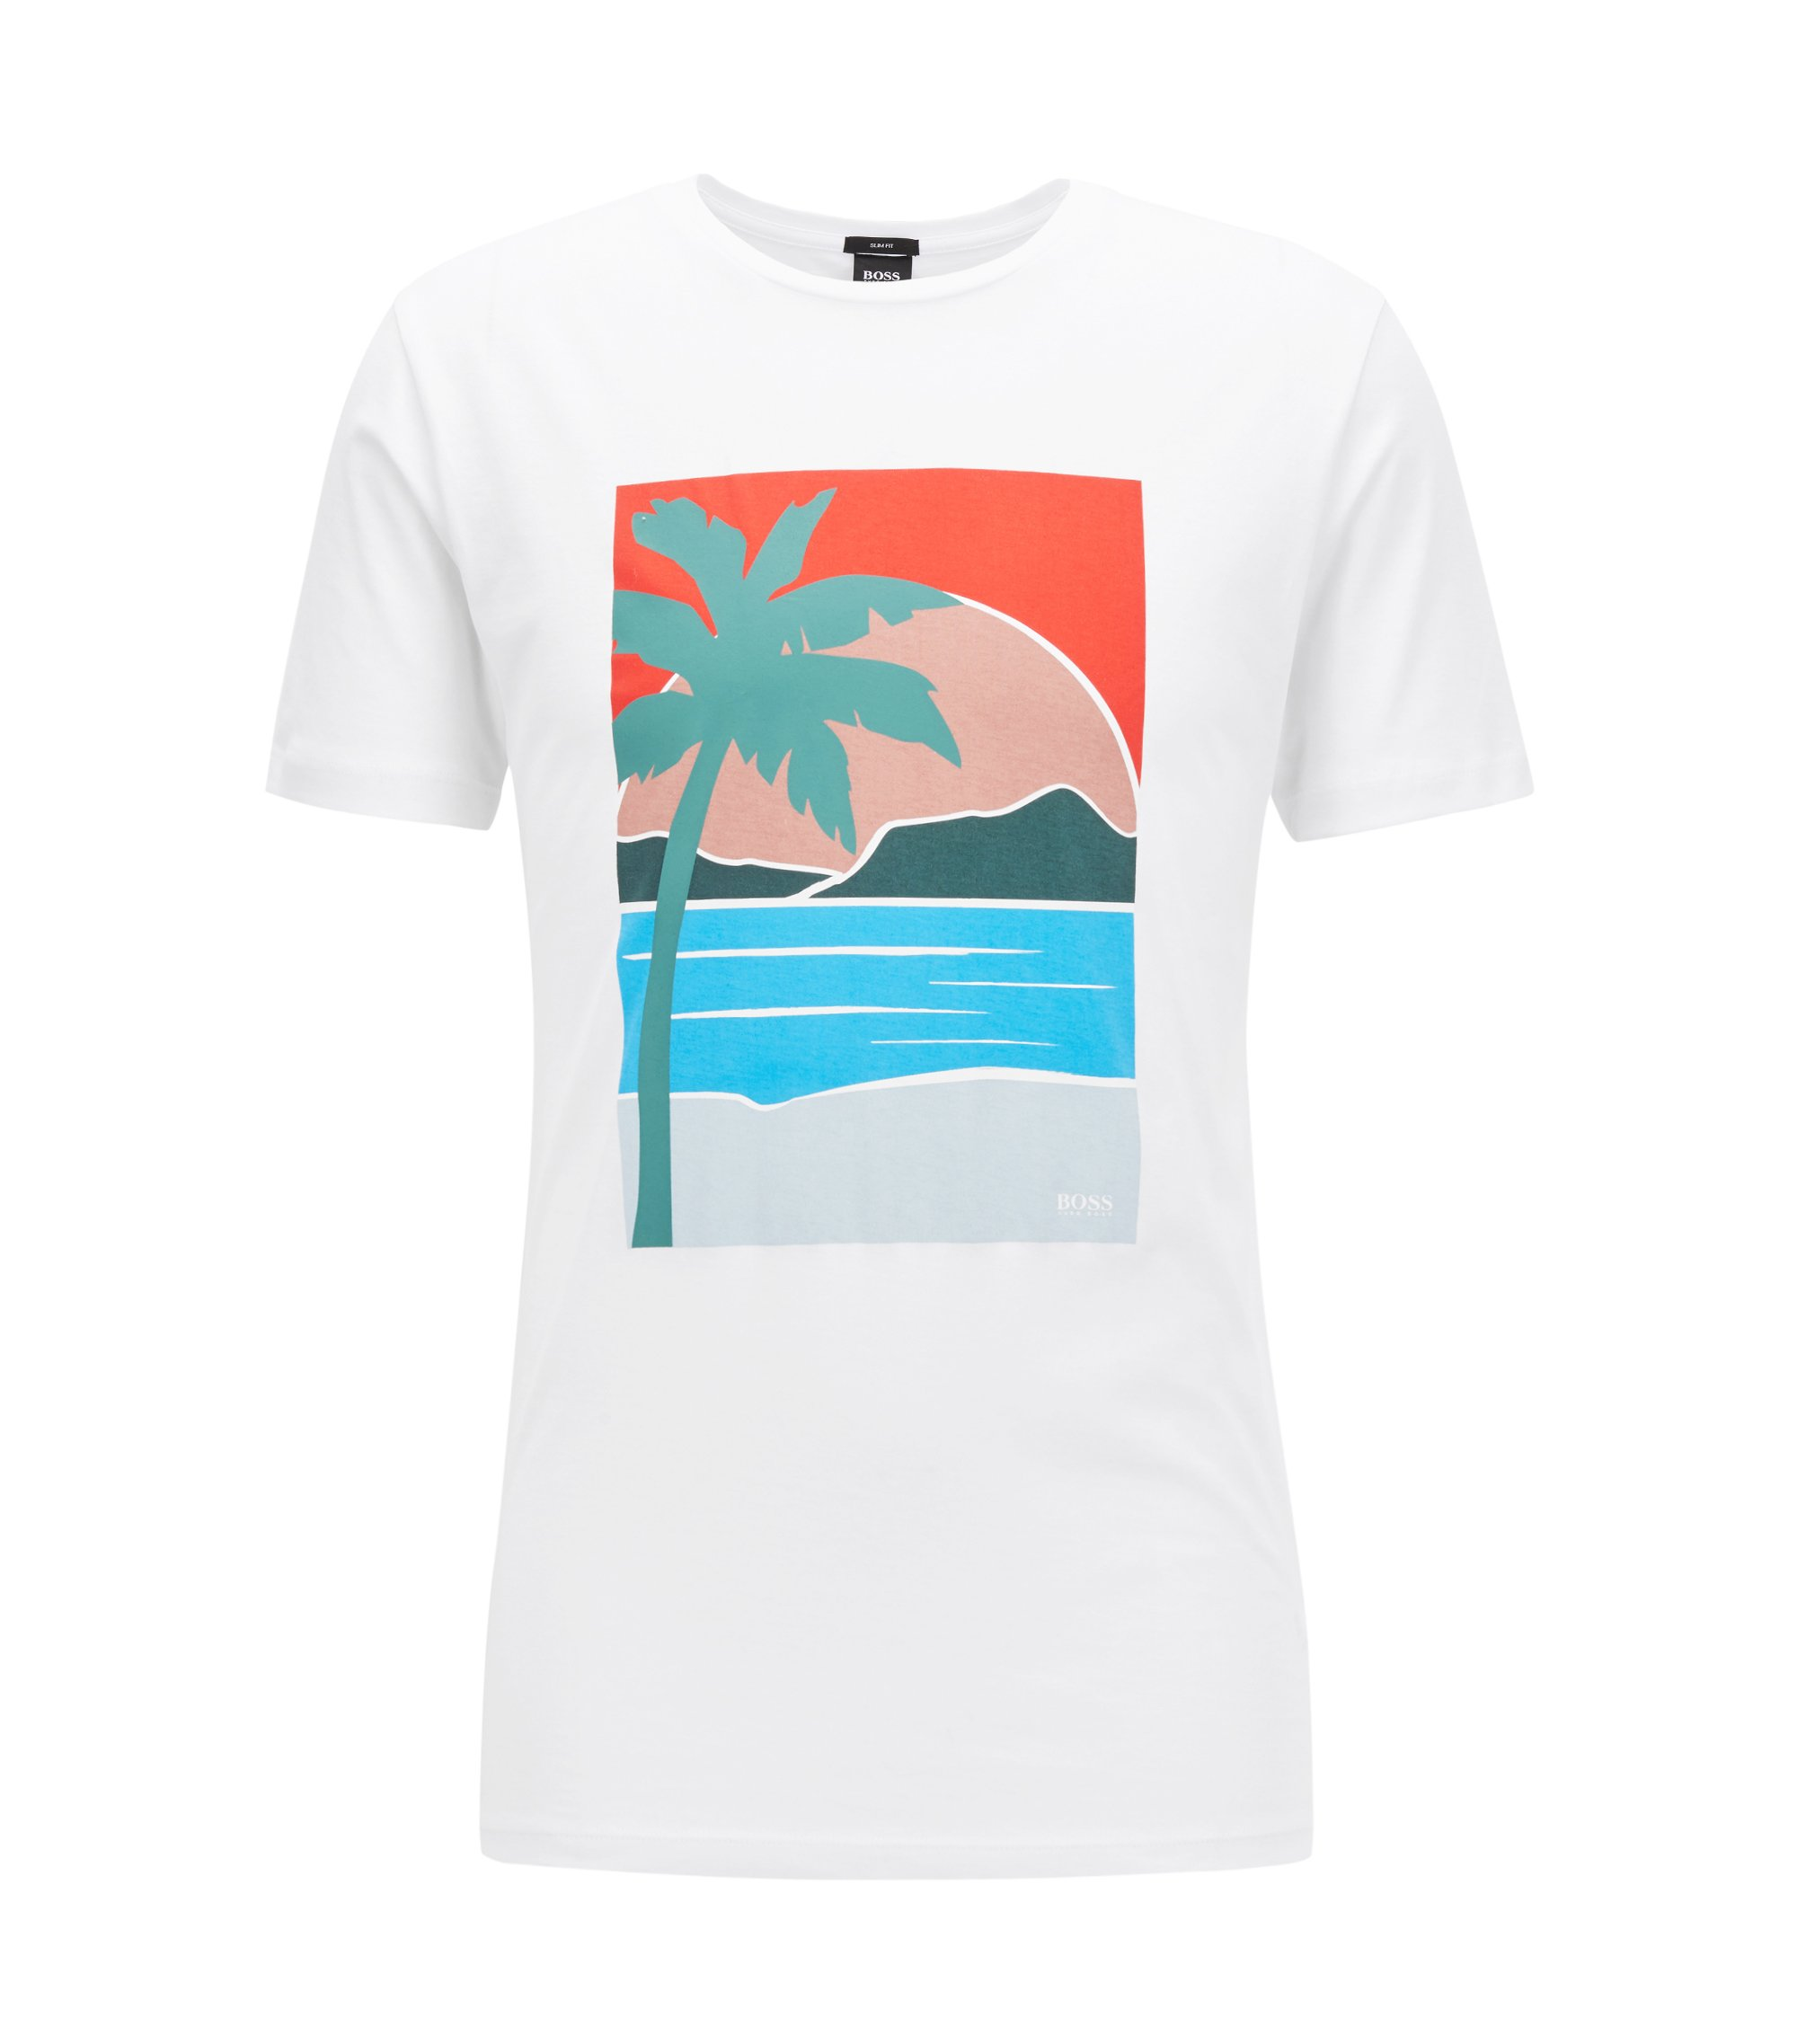 Camiseta slim fit con estampado veraniego, Blanco